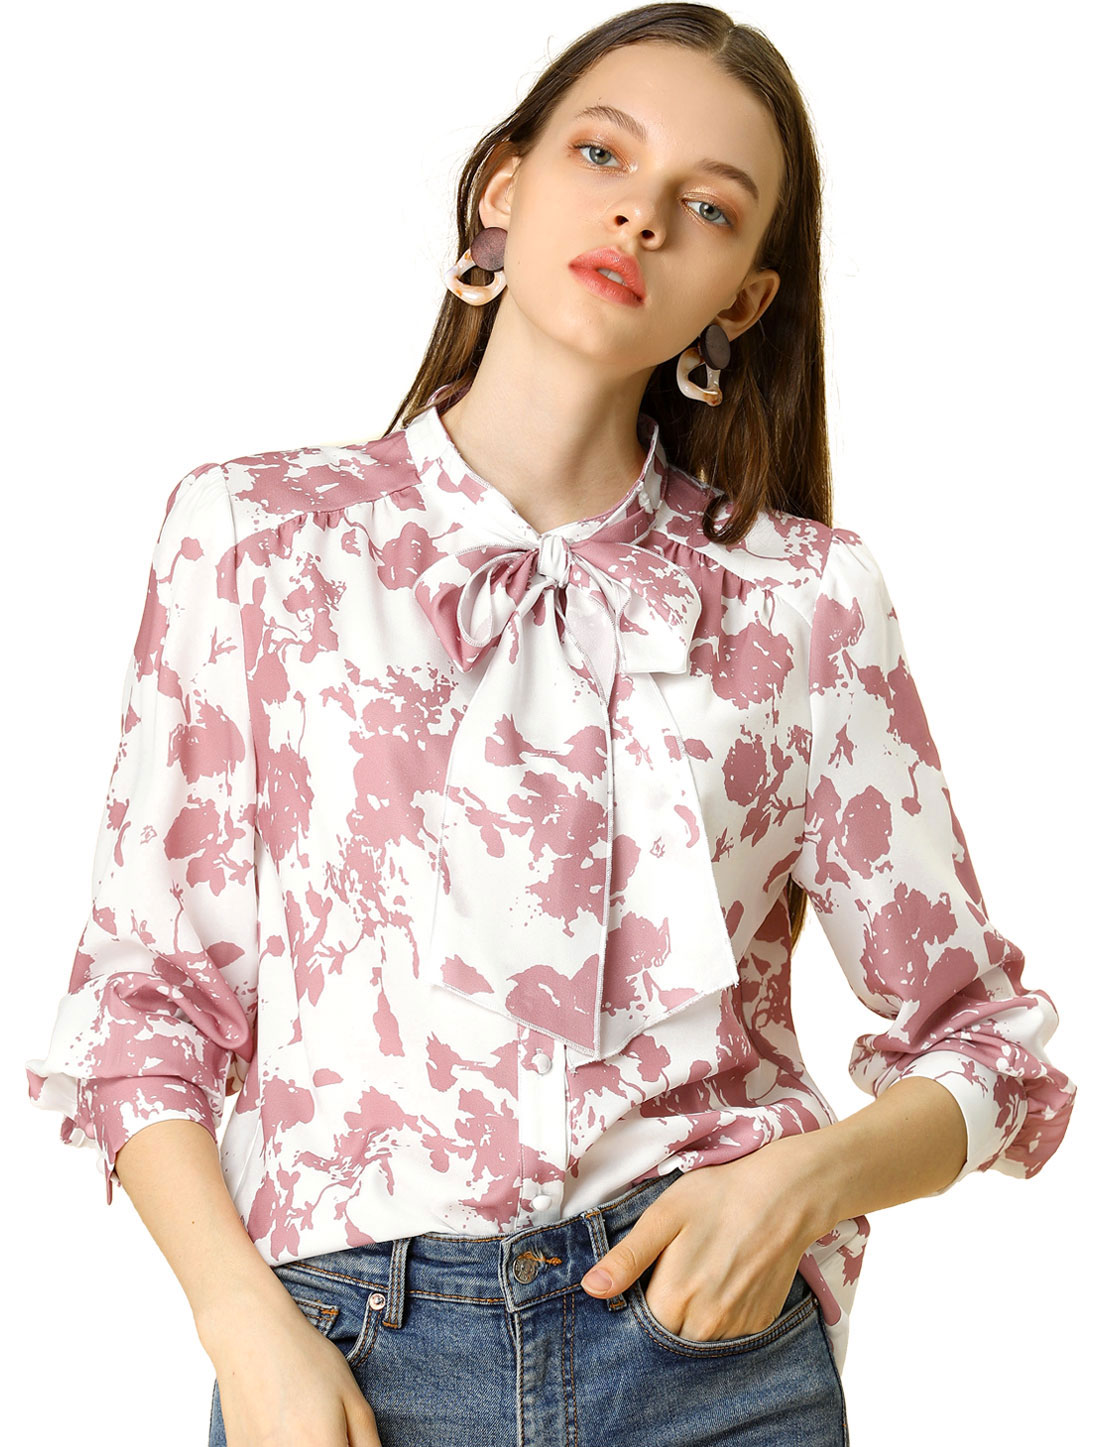 Allegra K Women's Floral Ruffle Sleeves Button Up Blouse Tie Neck Shirt White XS